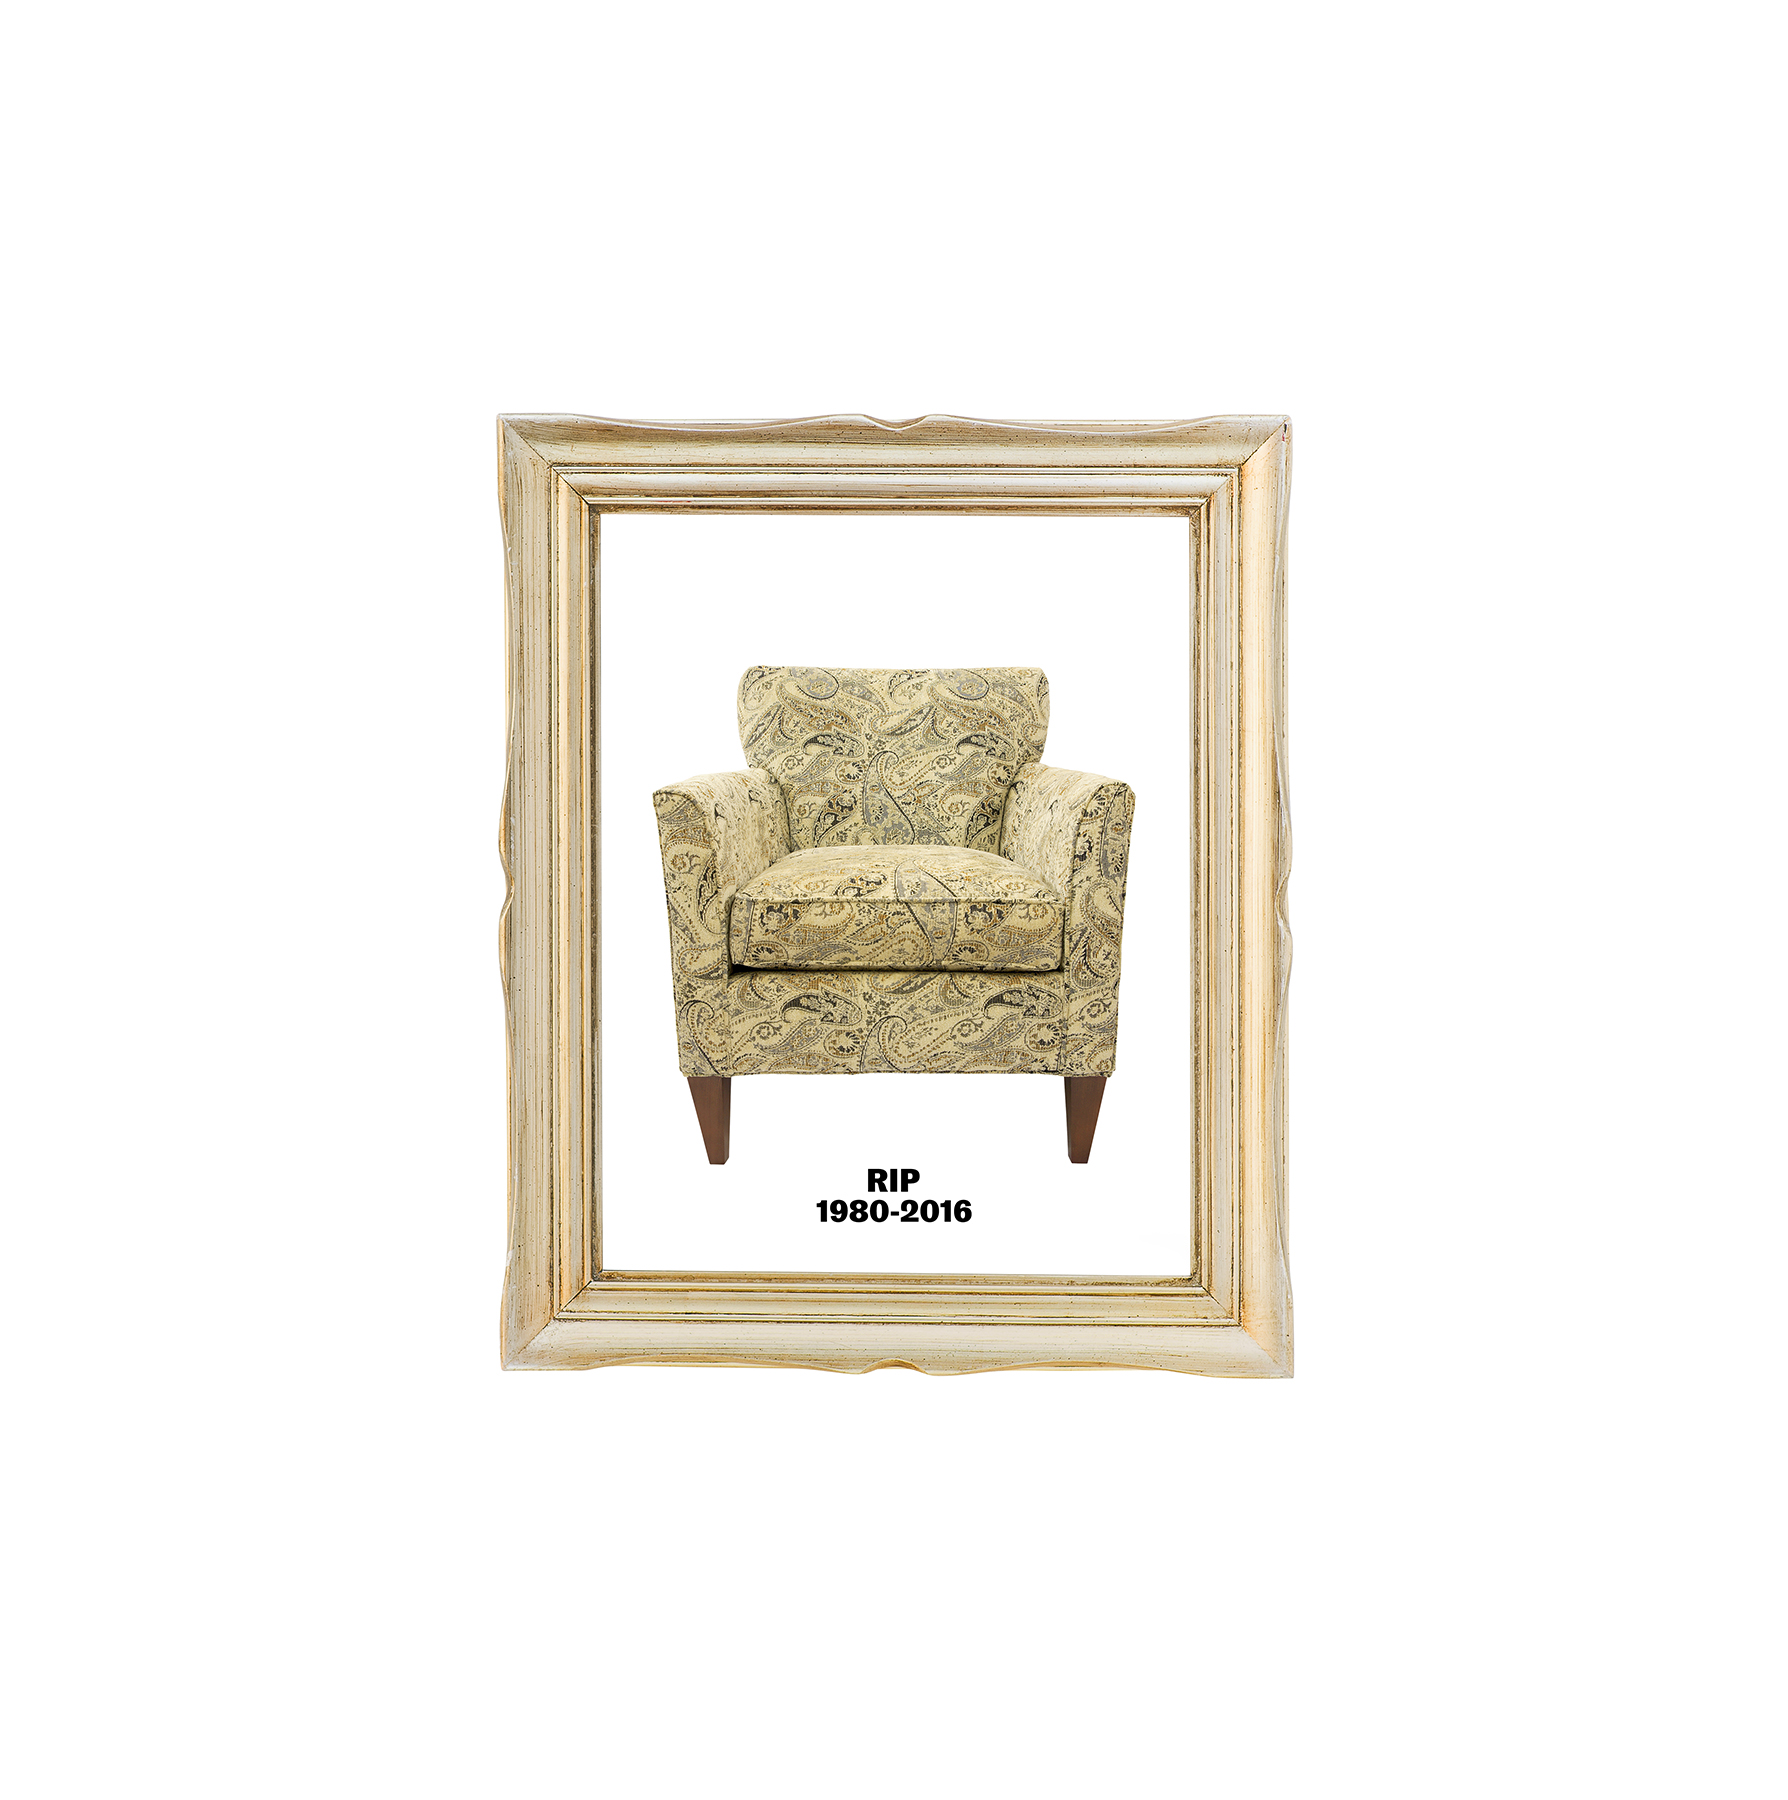 Paisley chair, framed